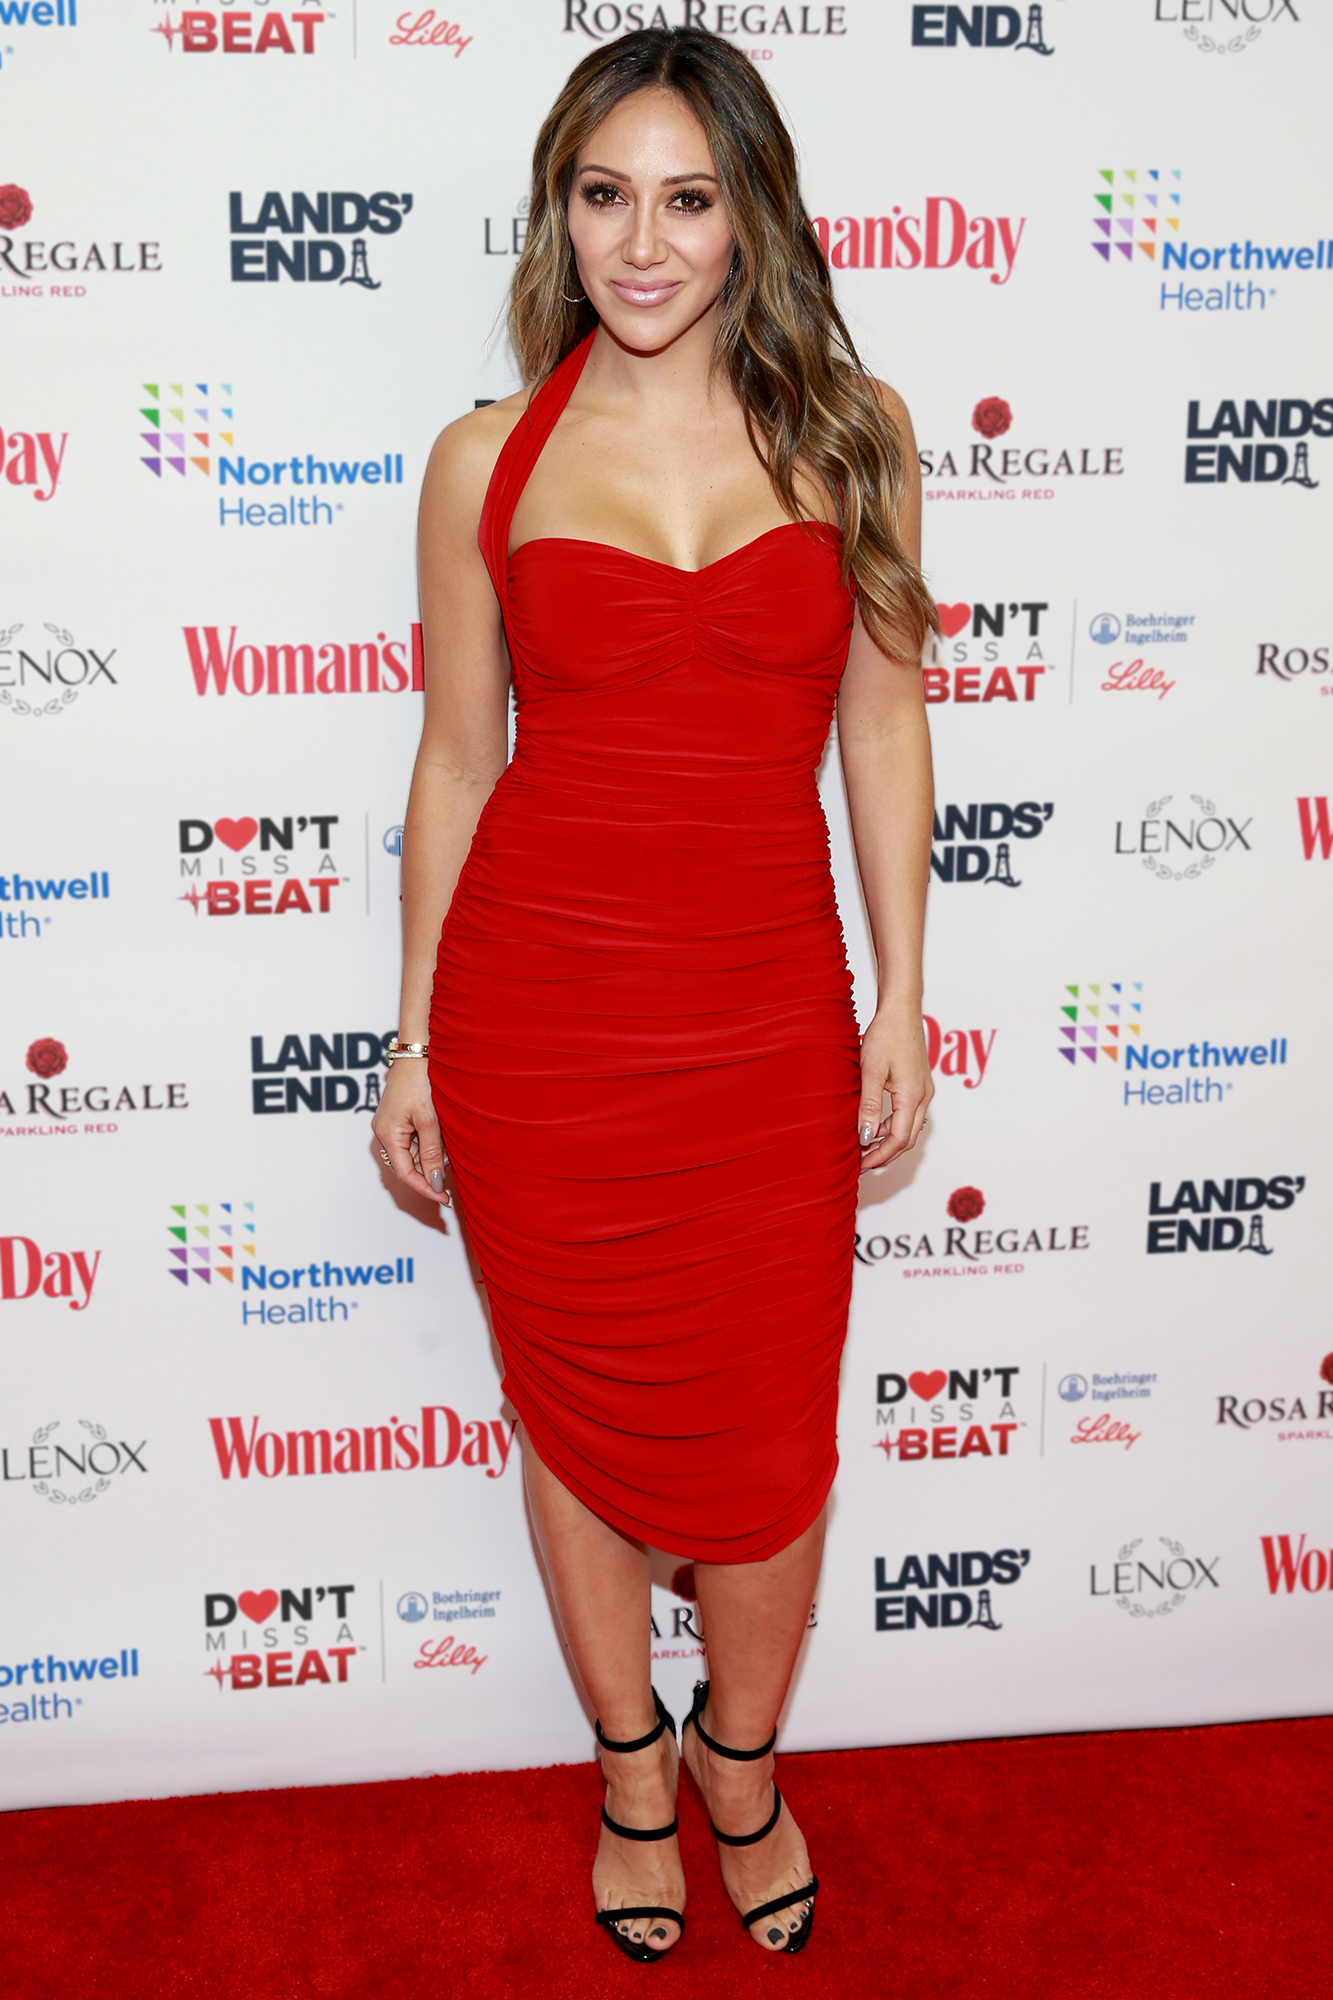 Melissa Gorga: 'I Don't Think' Teresa Giudice Will Move to Italy If Joe Giudice Is Deported - Melissa Gorga attends 'Woman's Day Celebrates 16th Annual Red Dress Awards' on February 12, 2019 in New York City.